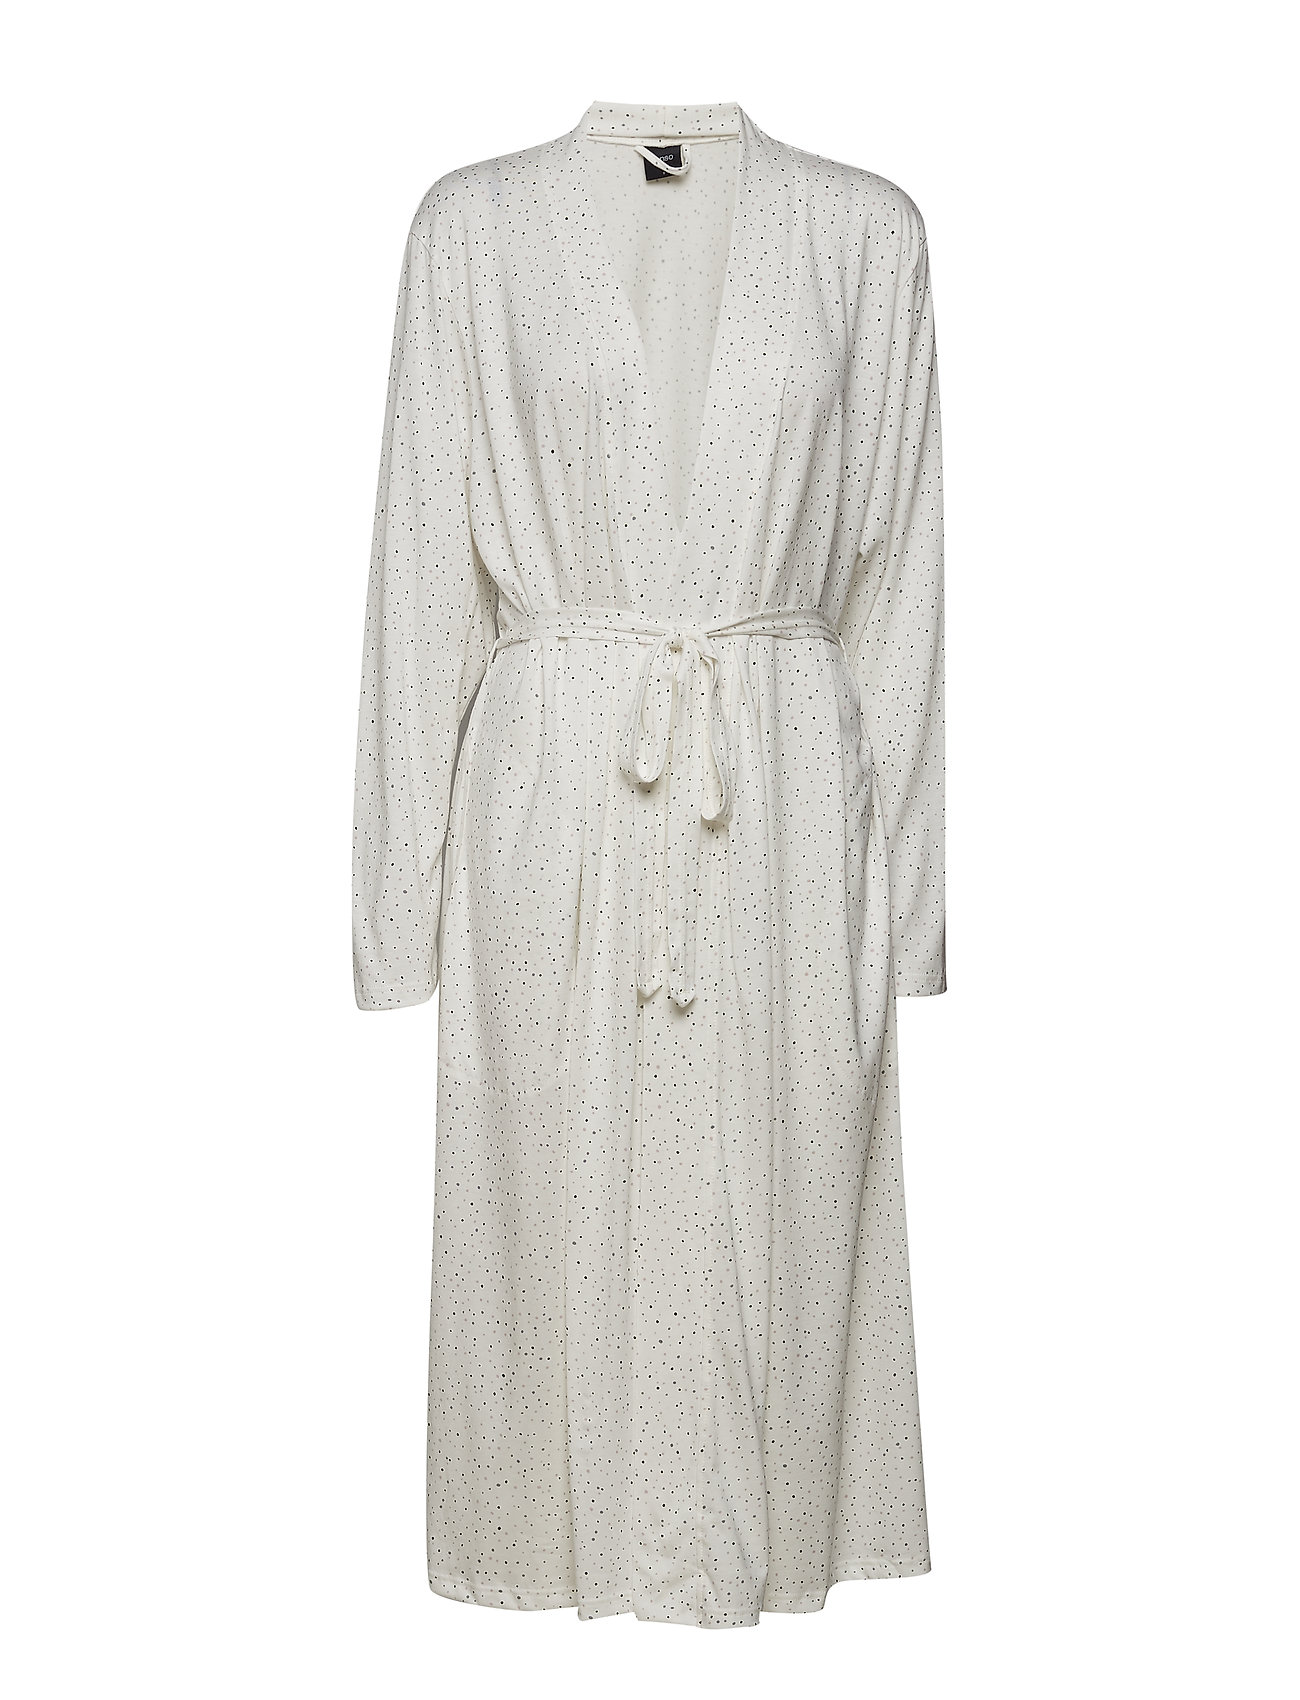 Ladies Dressing Gown, Hiutale by Nanso